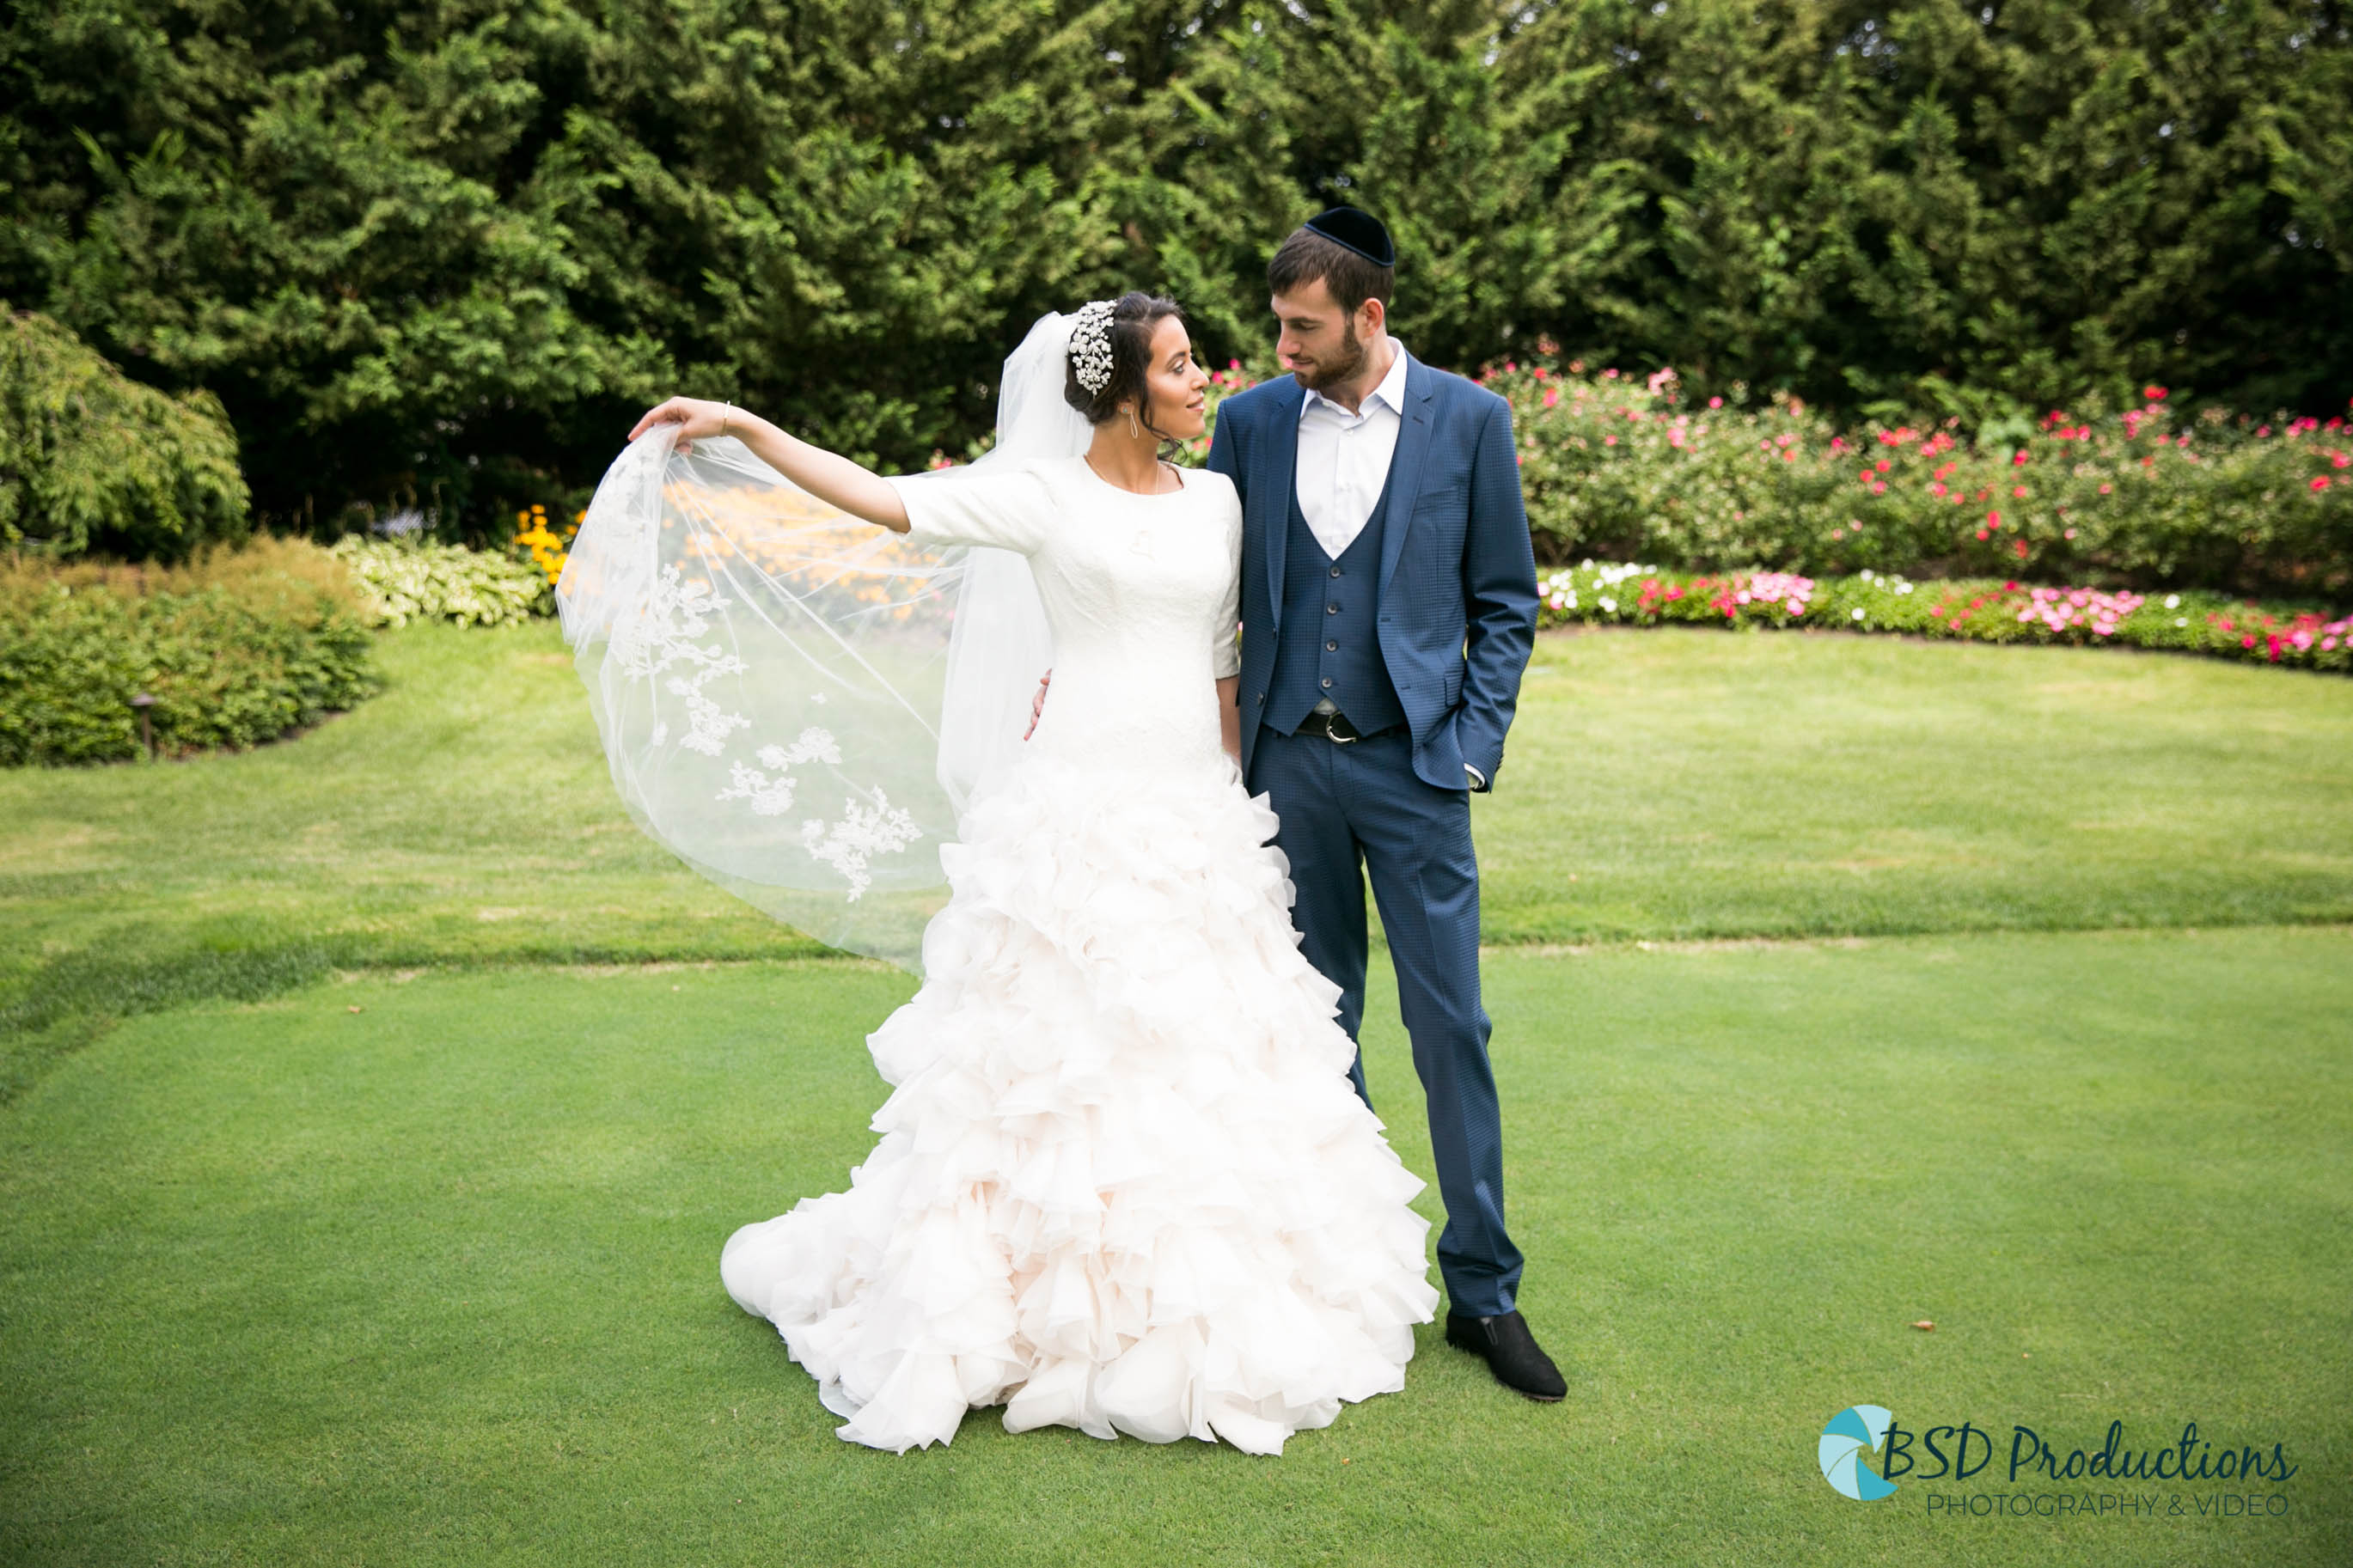 UH5A2568 Wedding – BSD Productions Photography